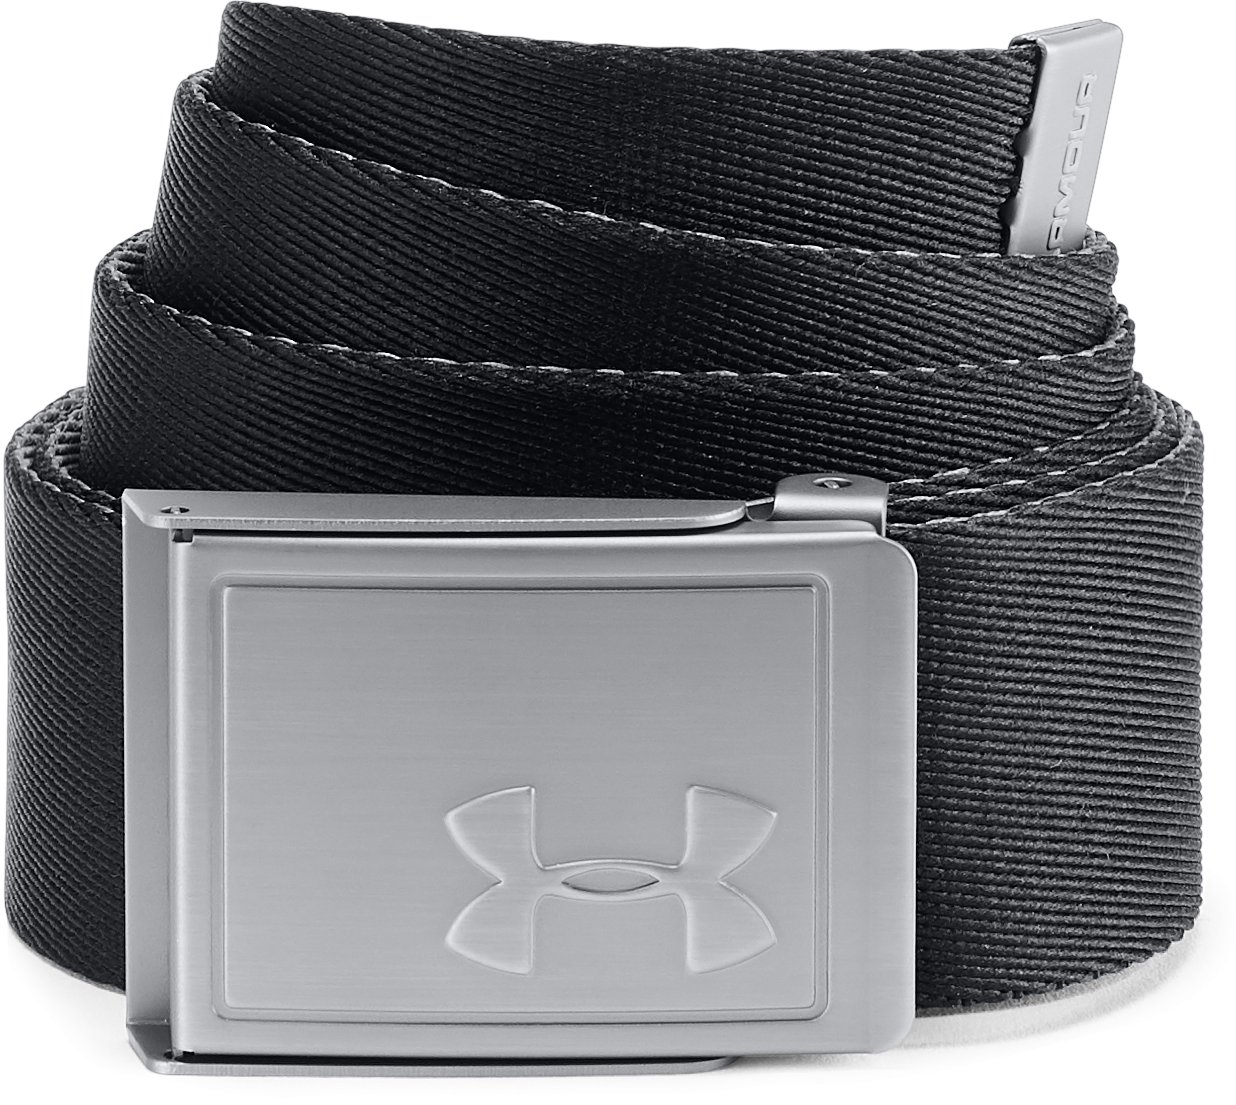 reversible beanies Men's UA Webbing Belt 2.0 Great features!...Great belt with durability and style....Great reversible and adjustable belt